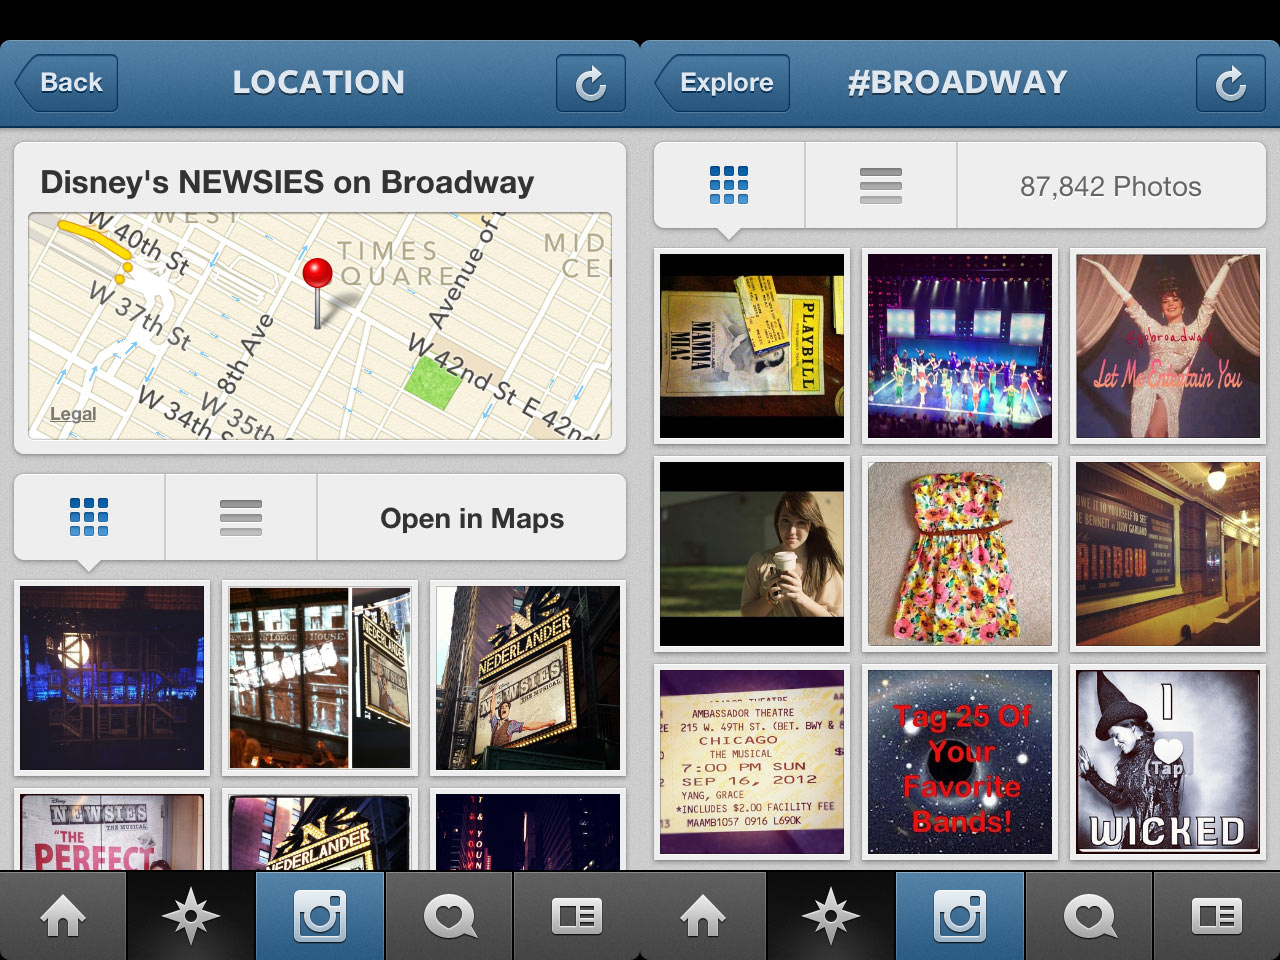 HuffPost: Smile Broadway! You're on Instagram